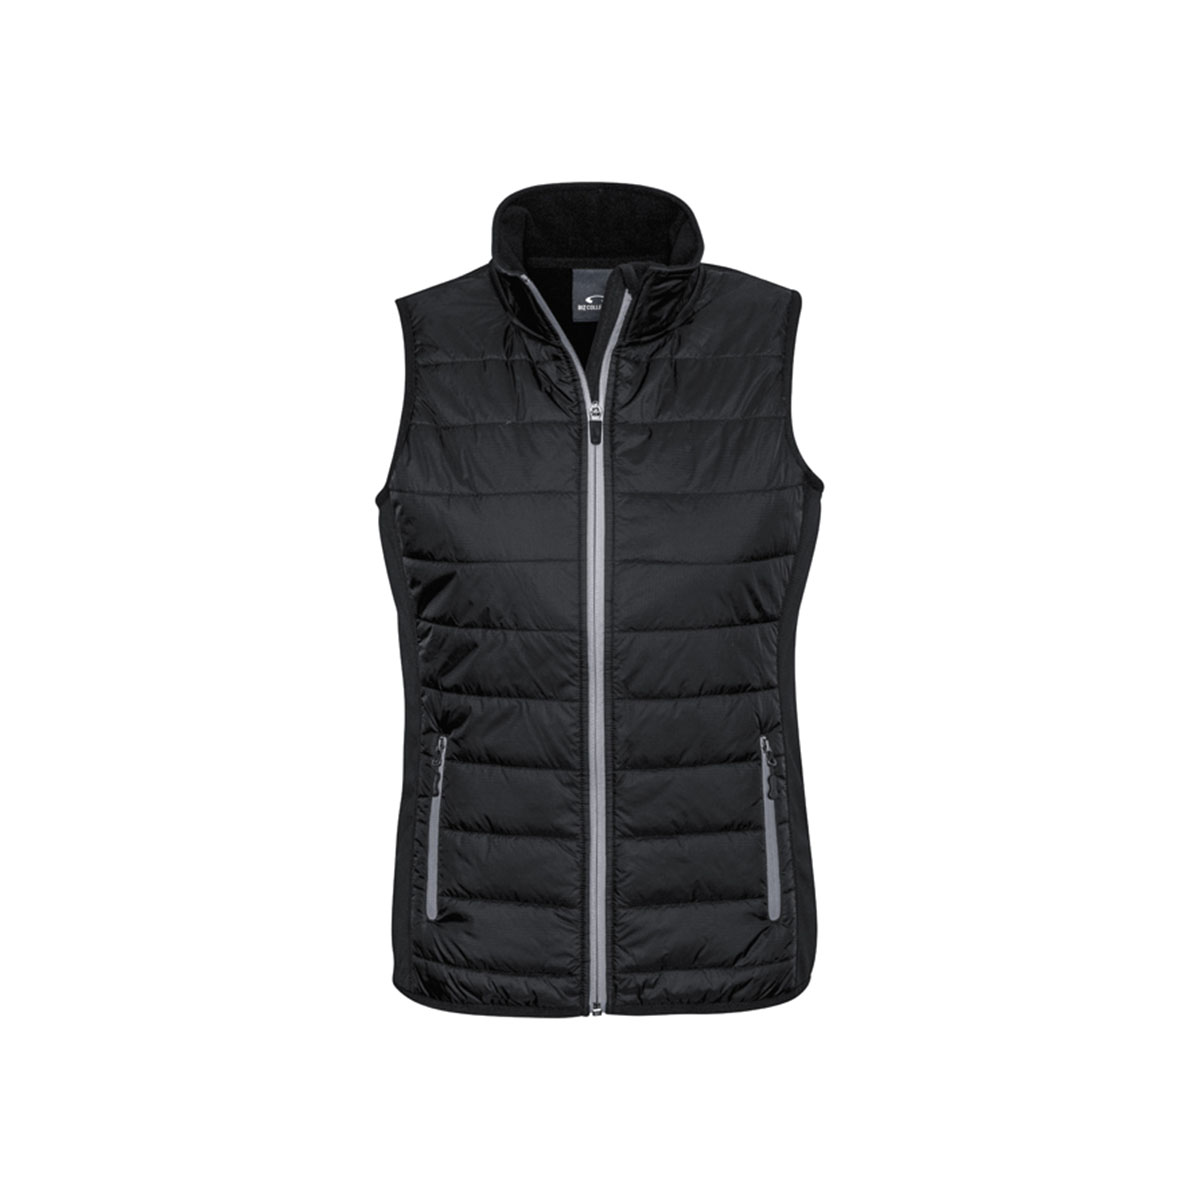 Ladies Stealth Tech Vest-Black / Silver Grey